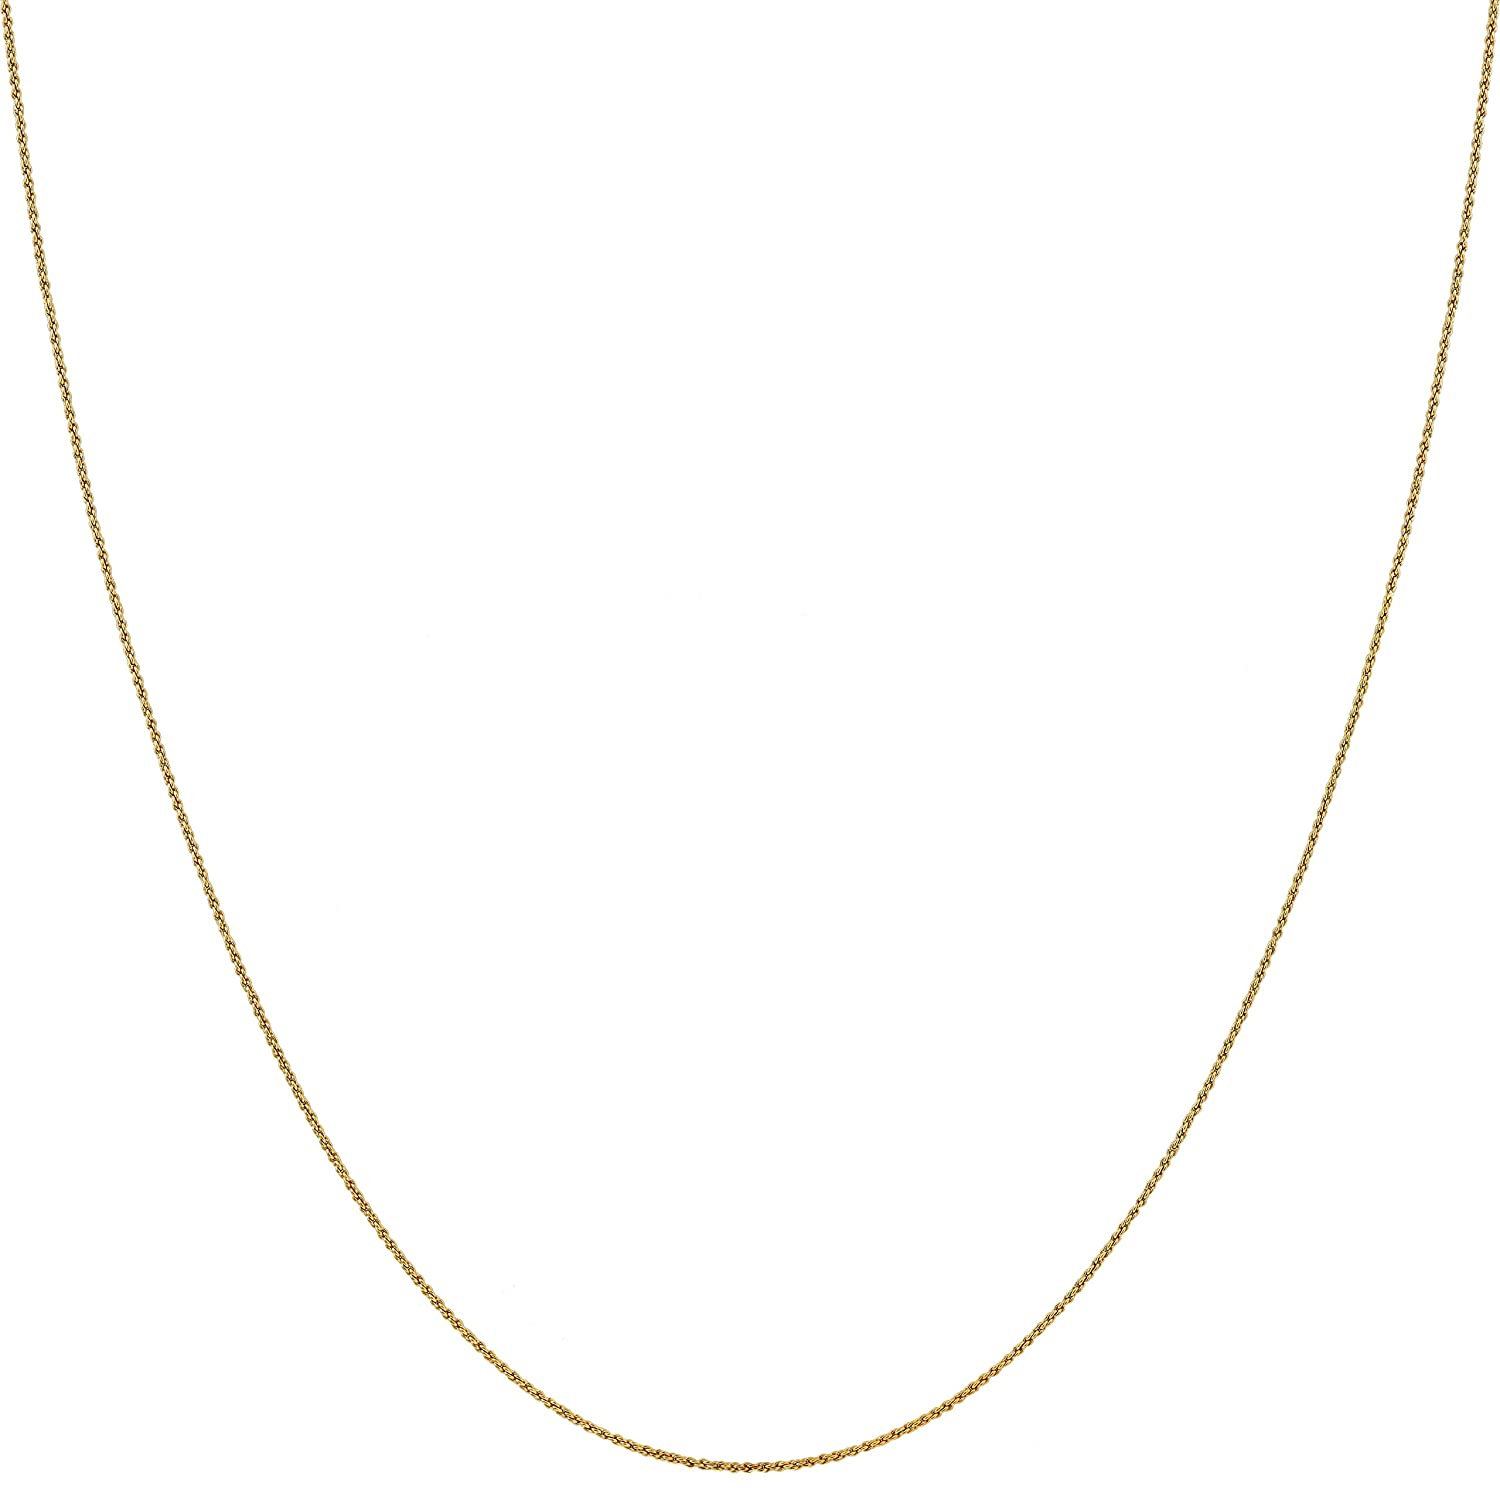 1MM Rope Chain, 24K Gold with Inlaid Bronze, Premium Fashion Jewelry,  Pendant Necklace